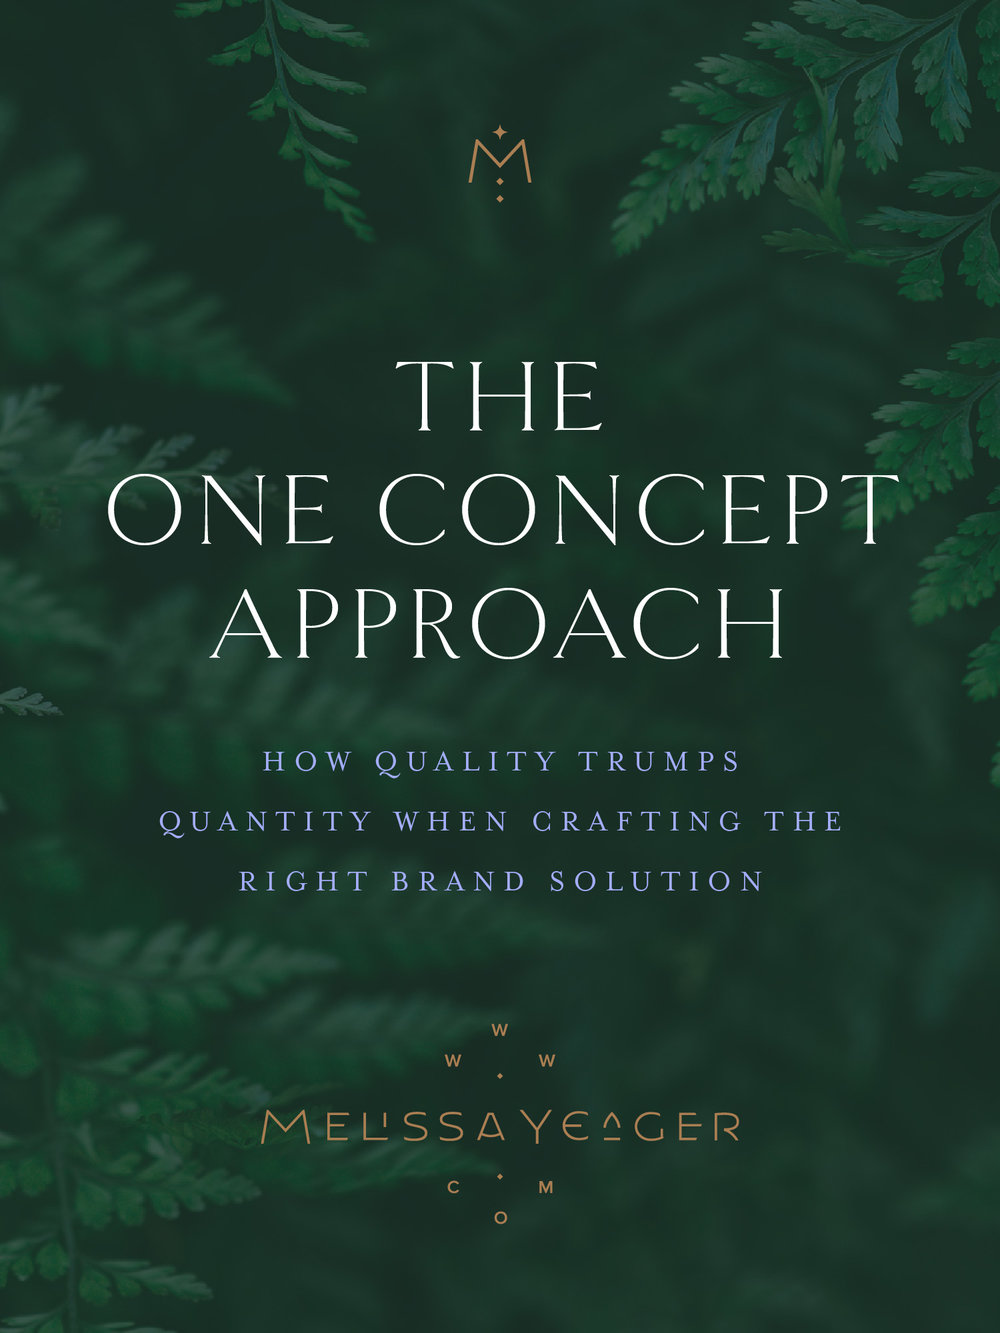 The One Concept Approach - how quality trumps quantity when creating the right brand solution